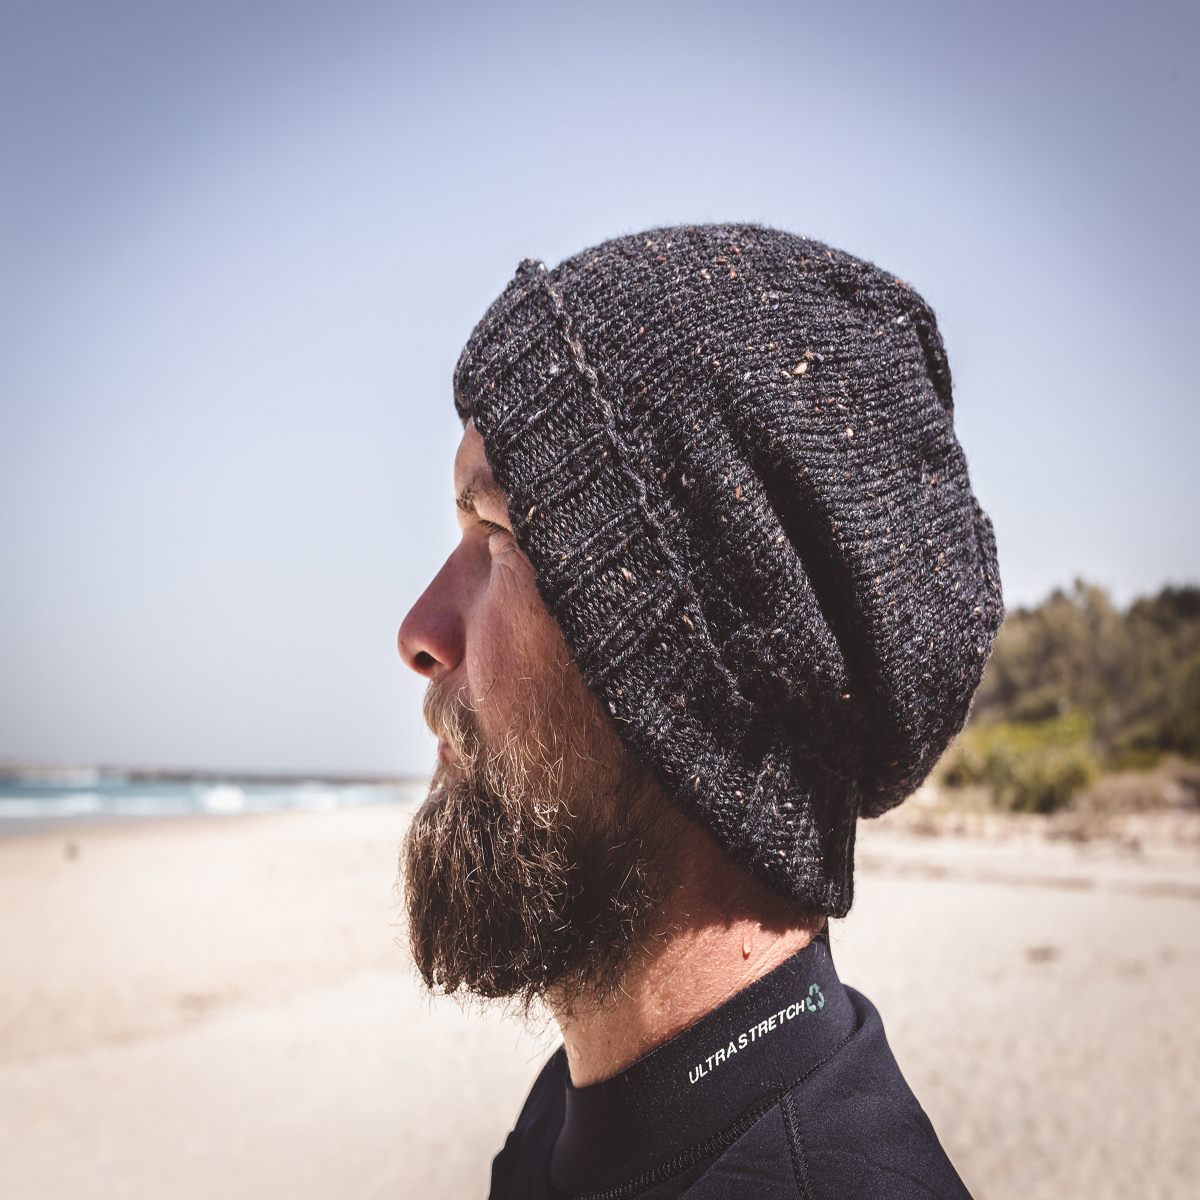 Men Speckled Black Wool Knit Beanie With Foldable Brim By SiennaKnits